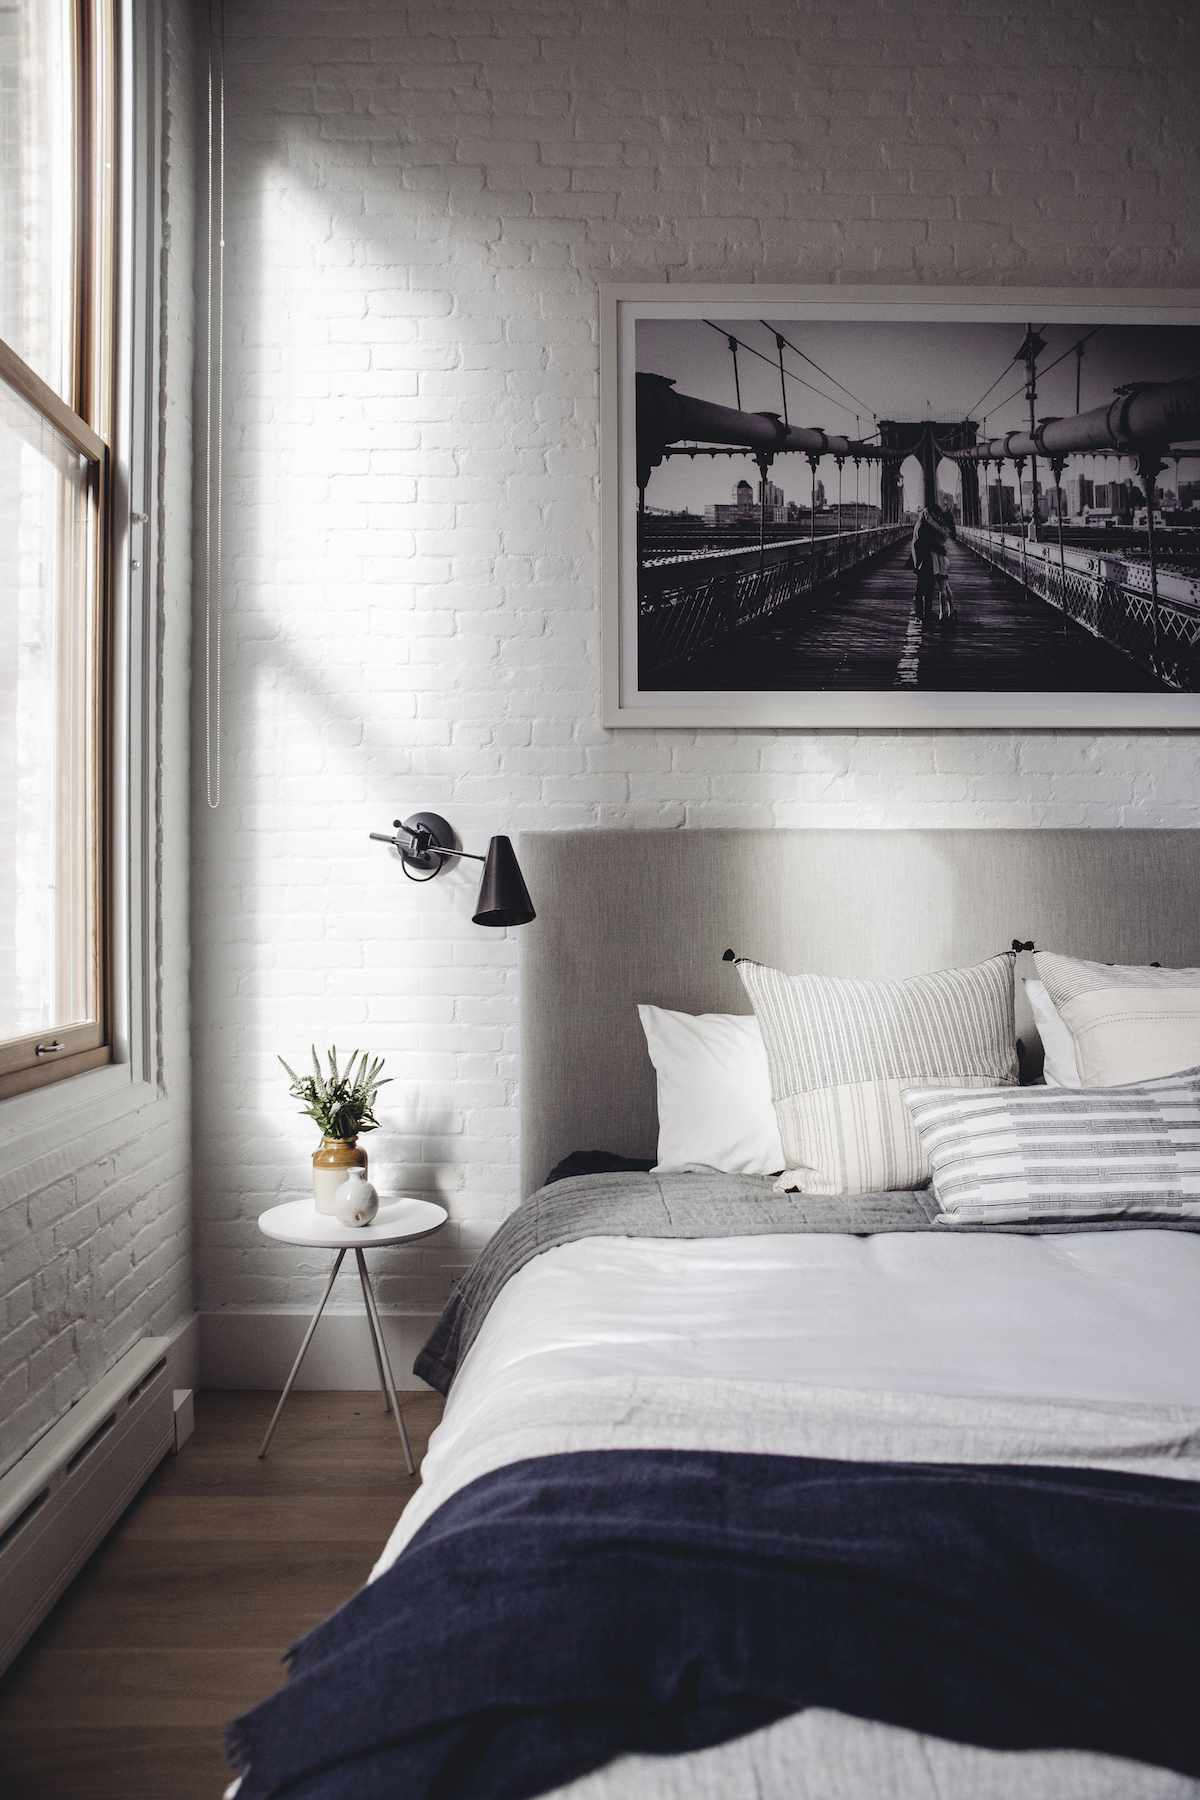 A bedroom with exposed brick walls that have been painted white